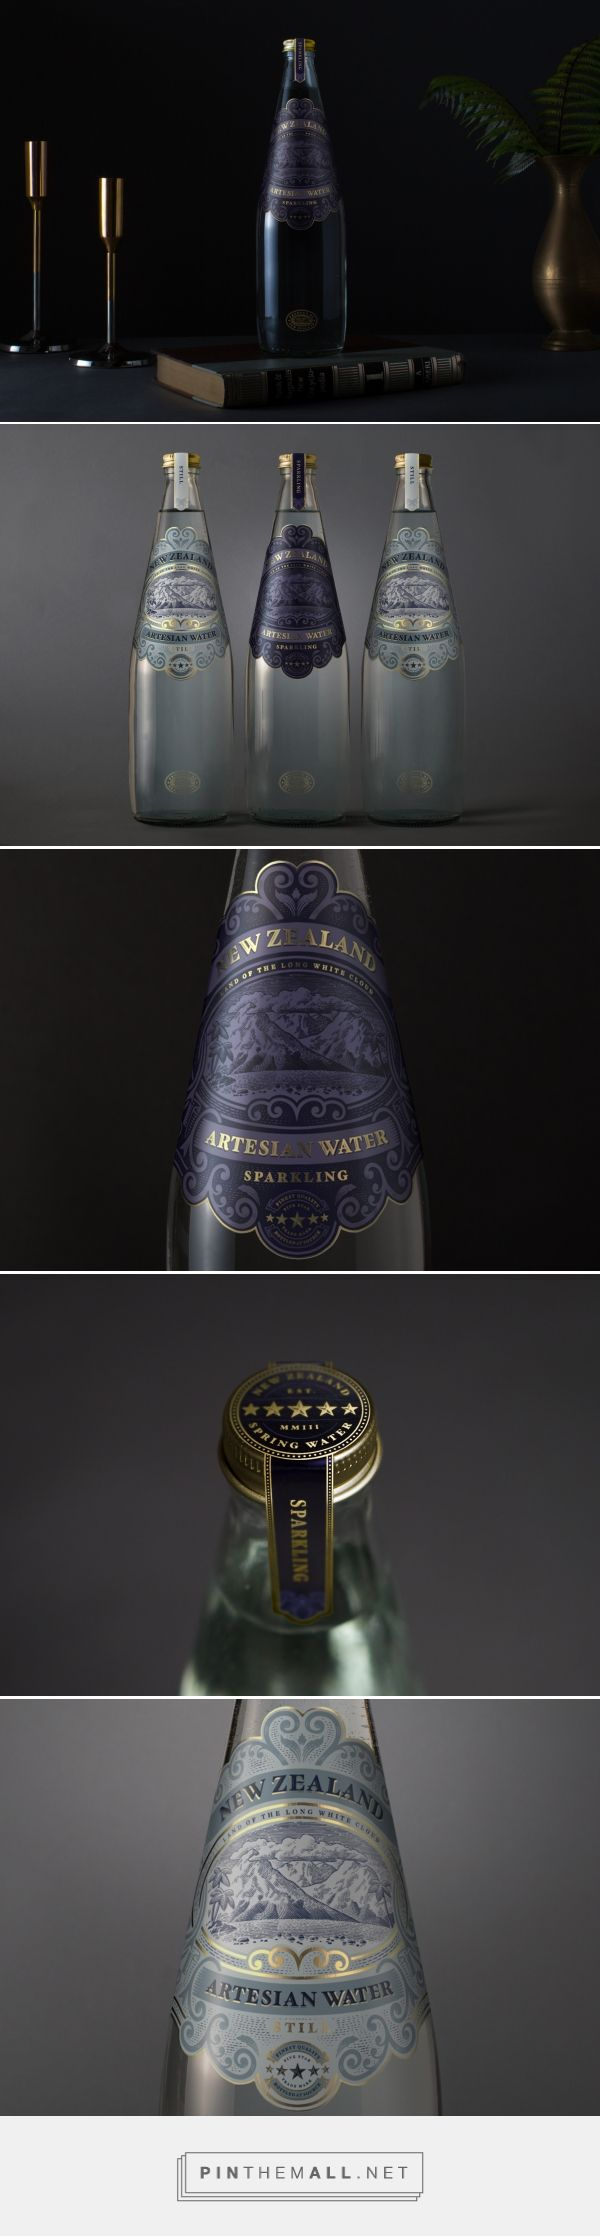 New Zealand Beverages Brand Artisan Water Packaging by Marx Design | Fivestar Branding Agency – Design and Branding Agency & Curated Inspiration Gallery